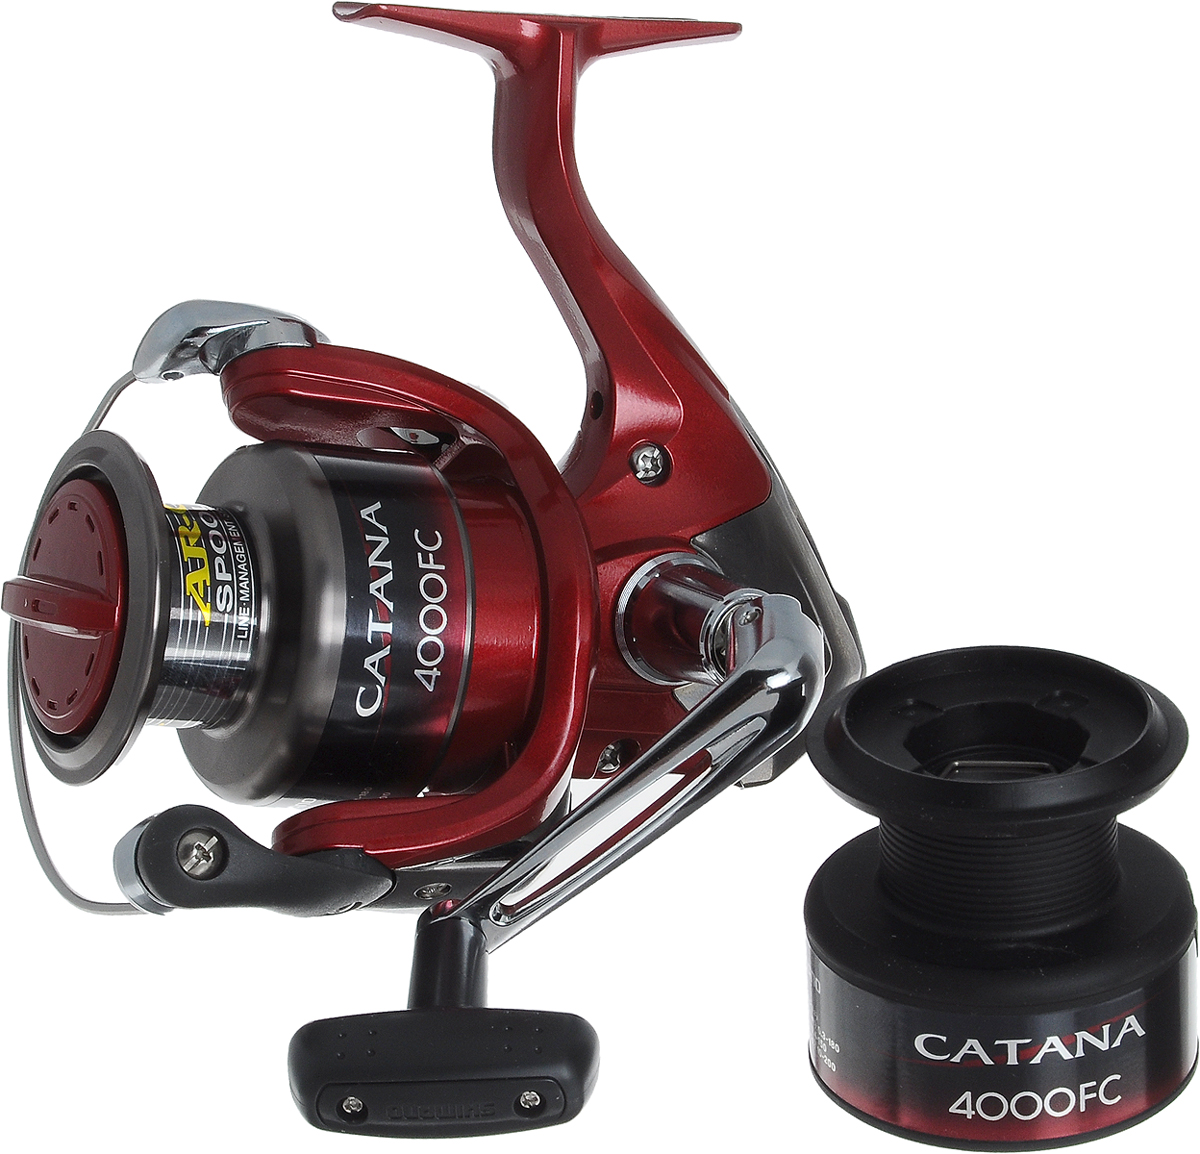 Катушка рыболовная Shimano Catana. CAT4000FC